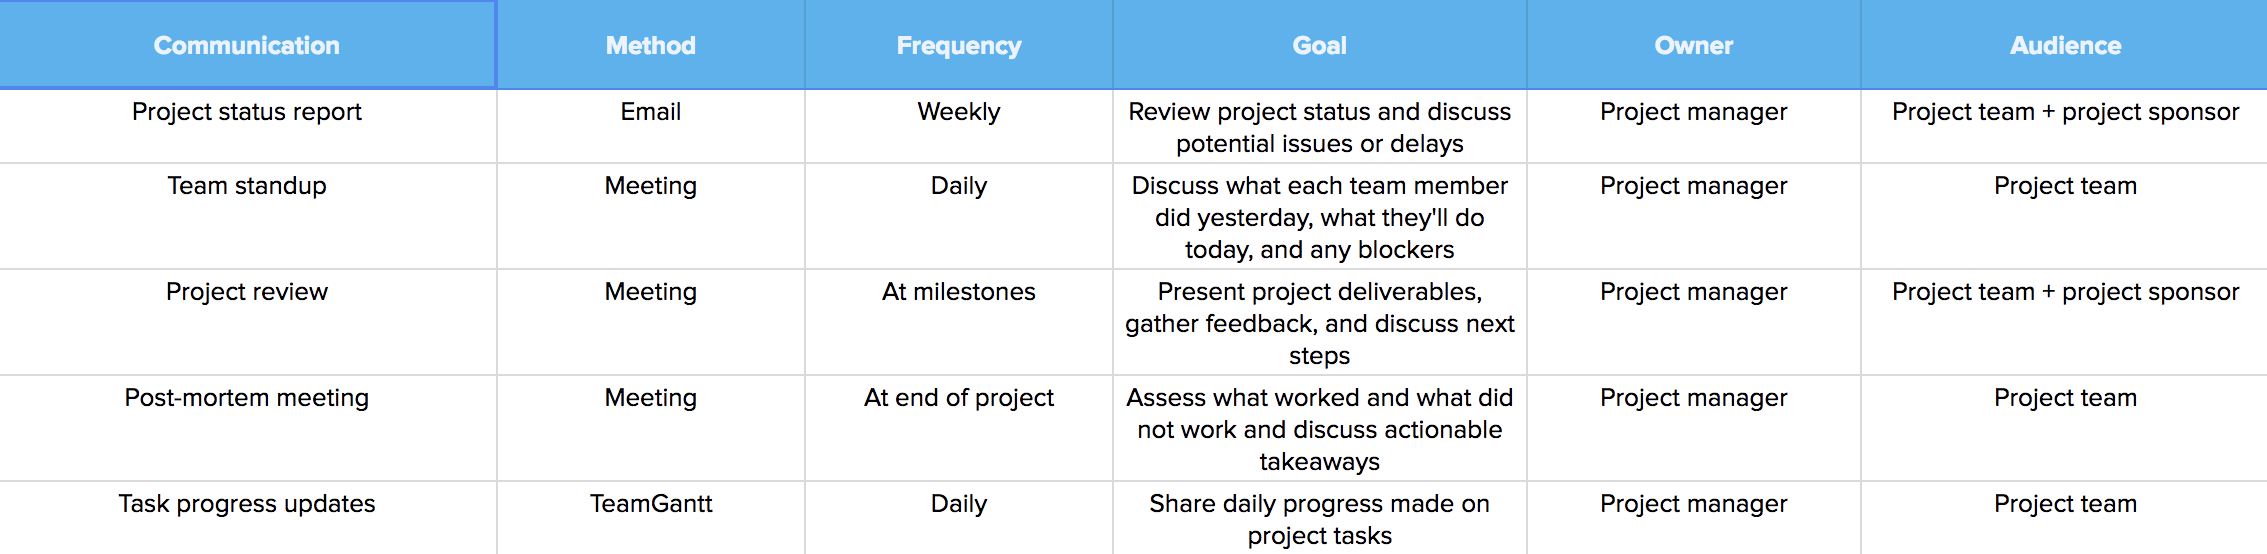 How to Create a Project Management Communication Plan | TeamGantt